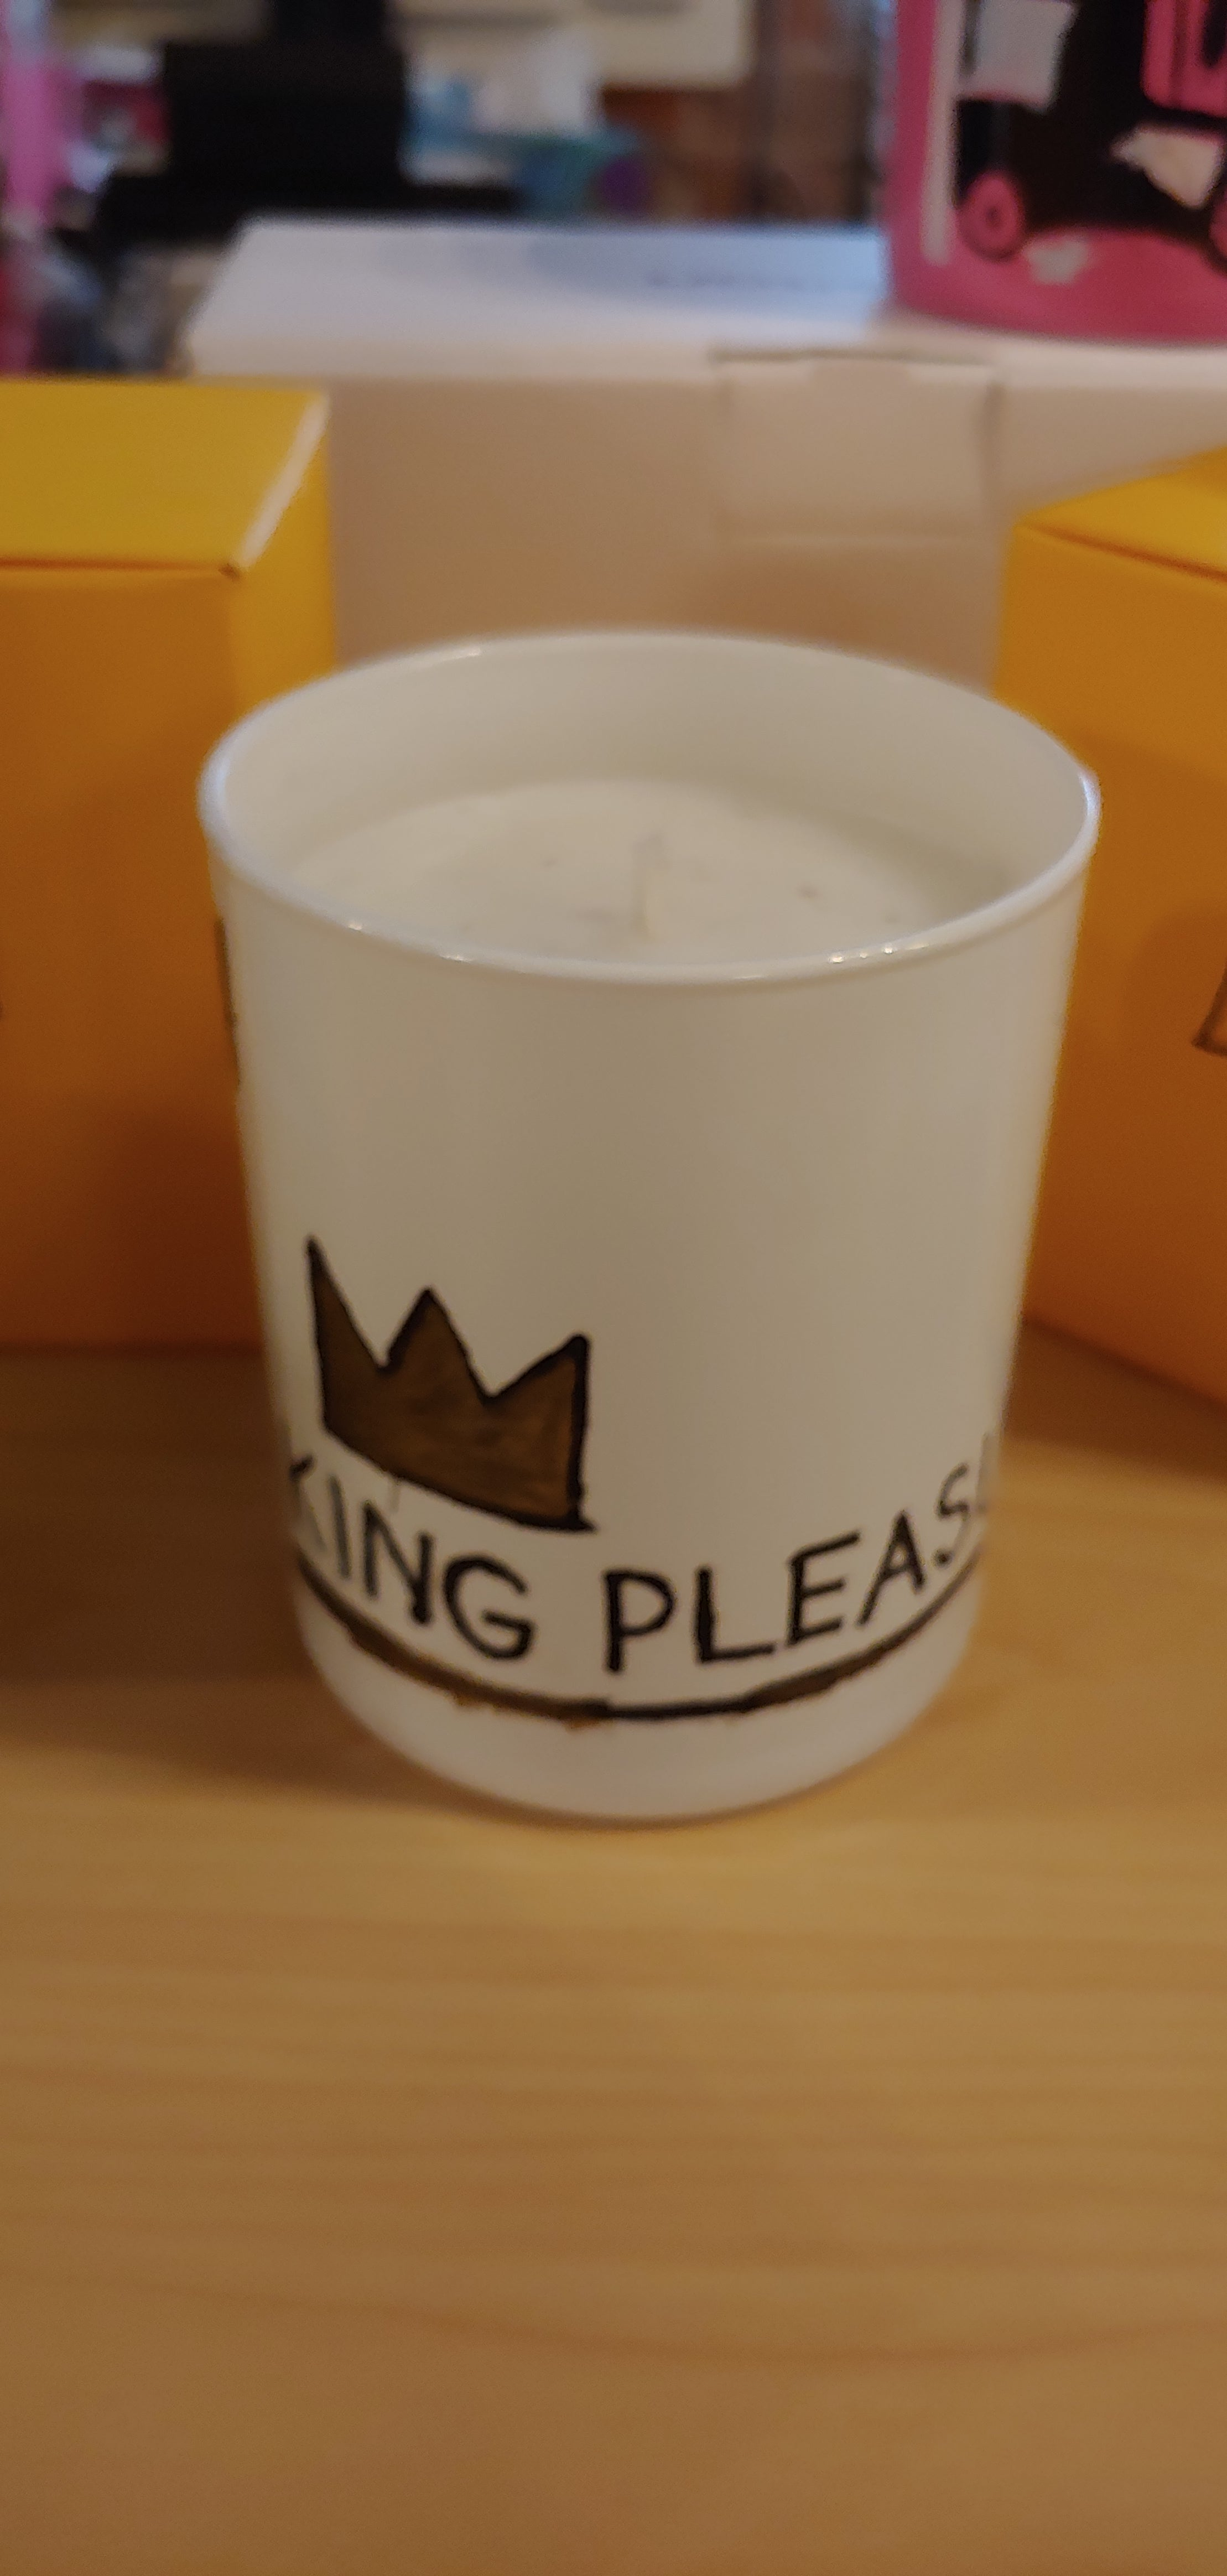 Jean-Michel Basquiat King Pleasure scented candle